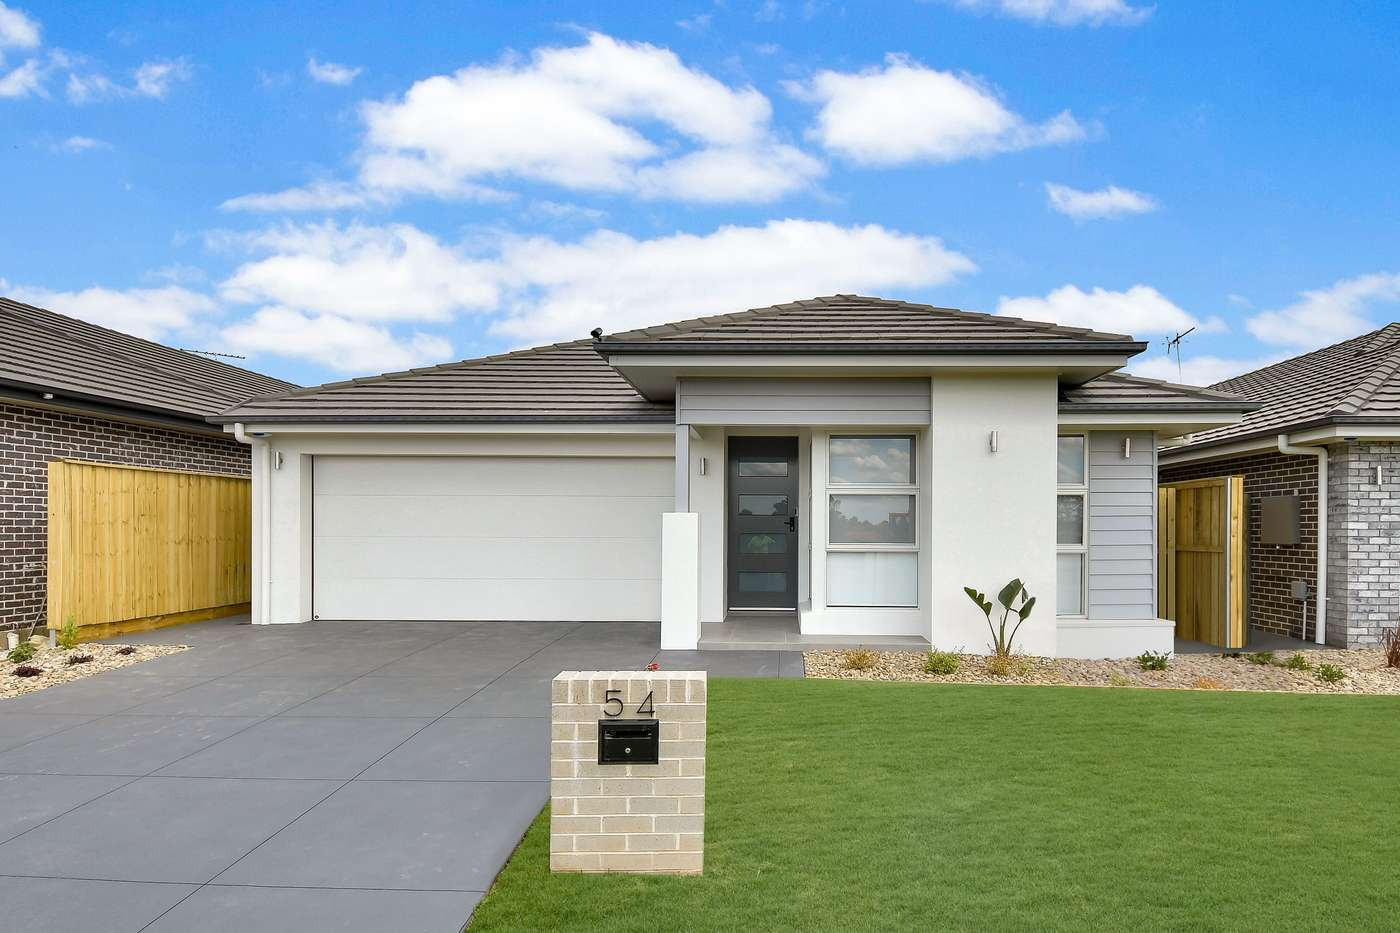 Main view of Homely house listing, 54 Silvester Way, Gledswood Hills, NSW 2557